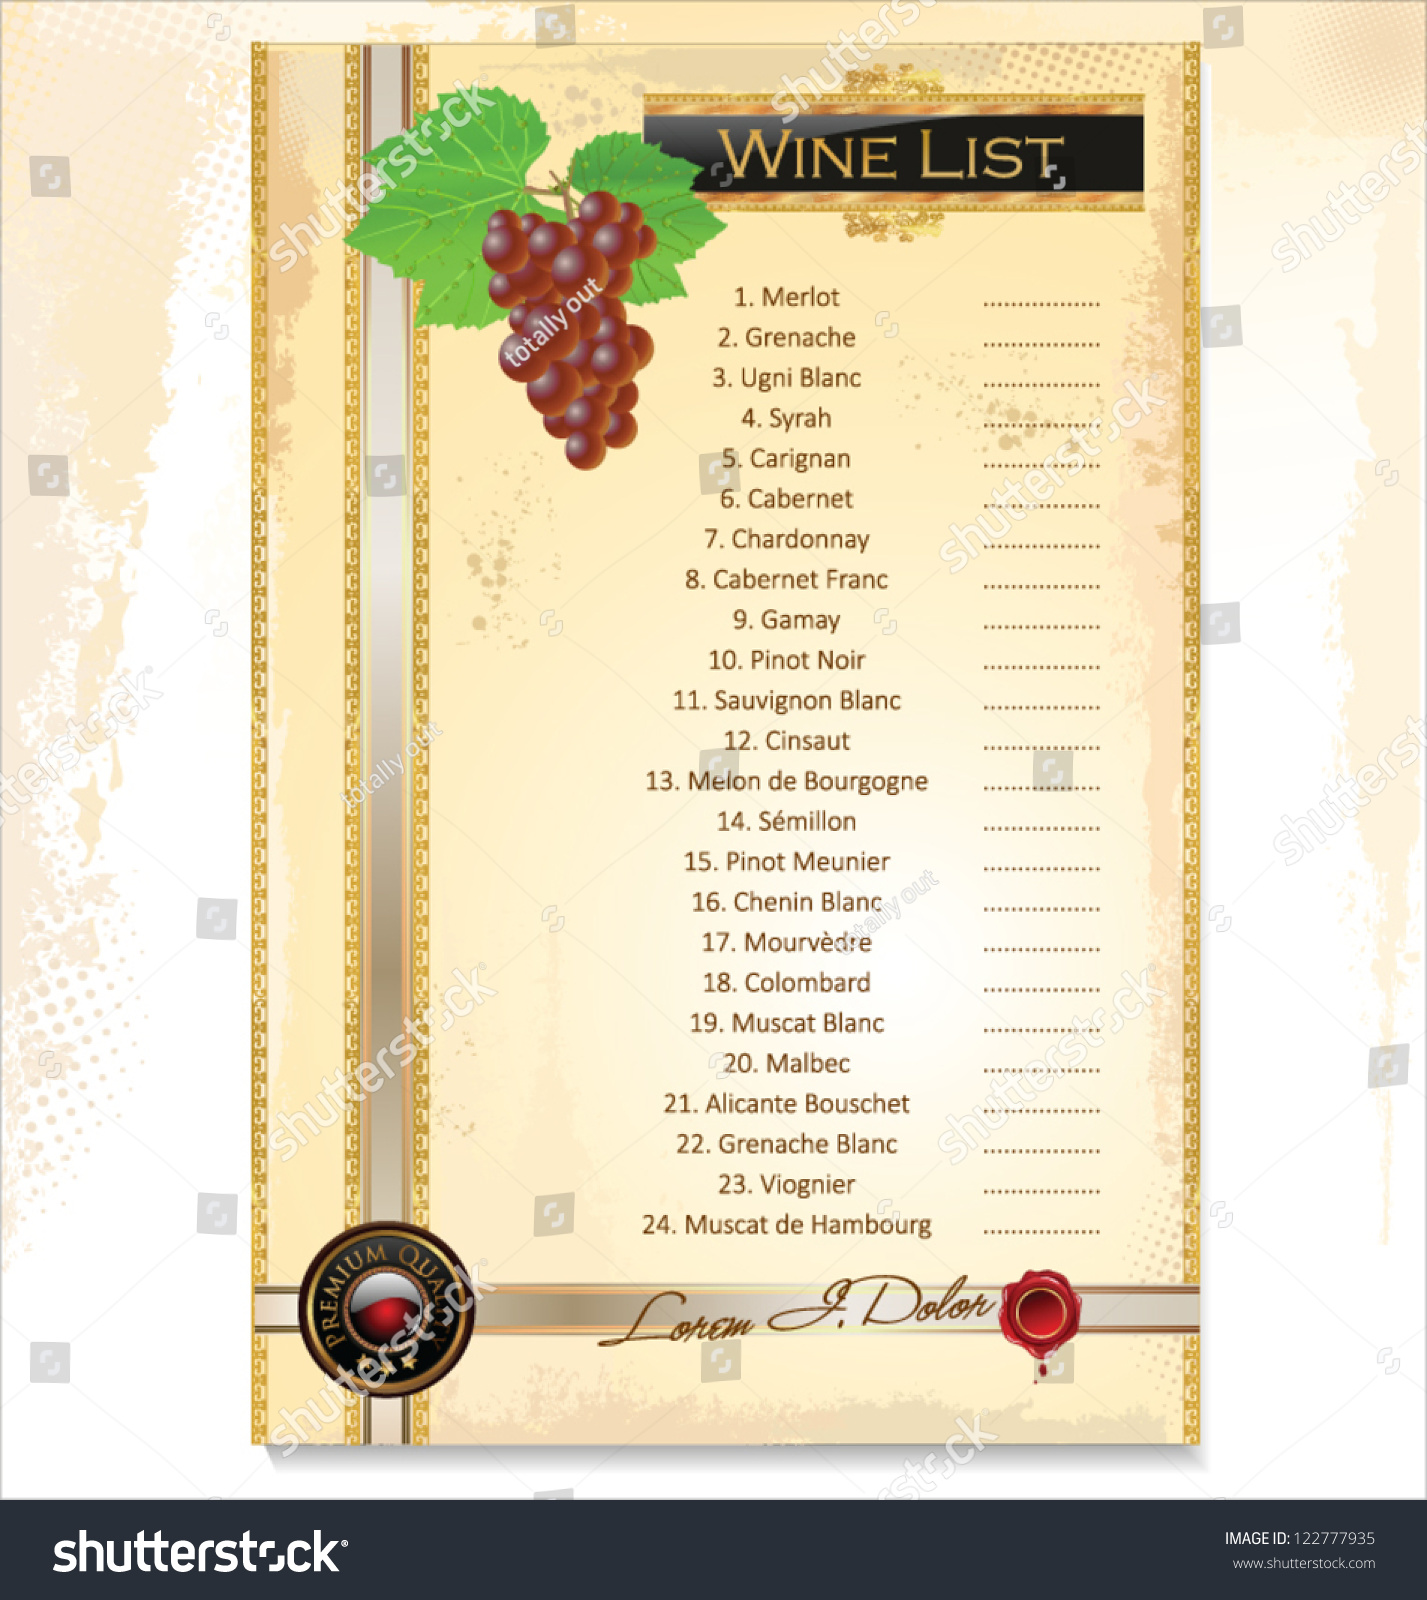 wine menu template with a price list stock vector 122777935 shutterstock. Black Bedroom Furniture Sets. Home Design Ideas